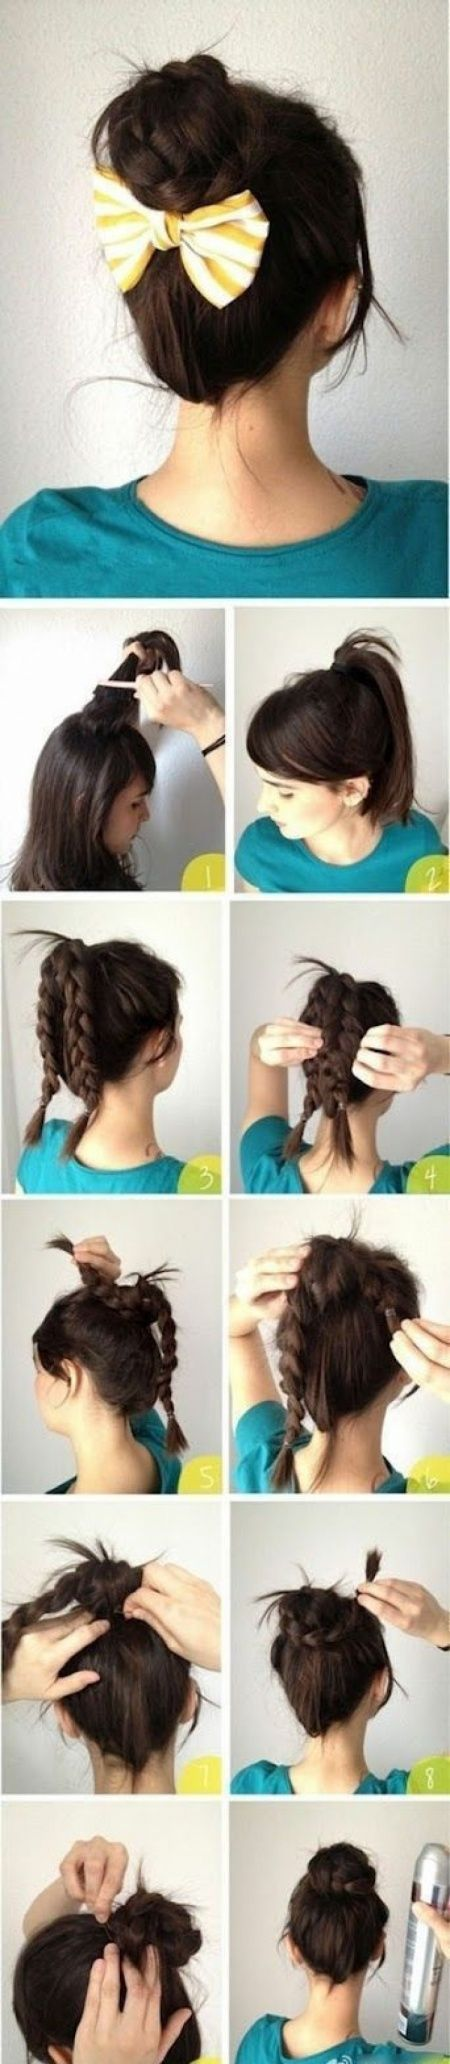 best hair images by adria tohhenderson on pinterest hair dos